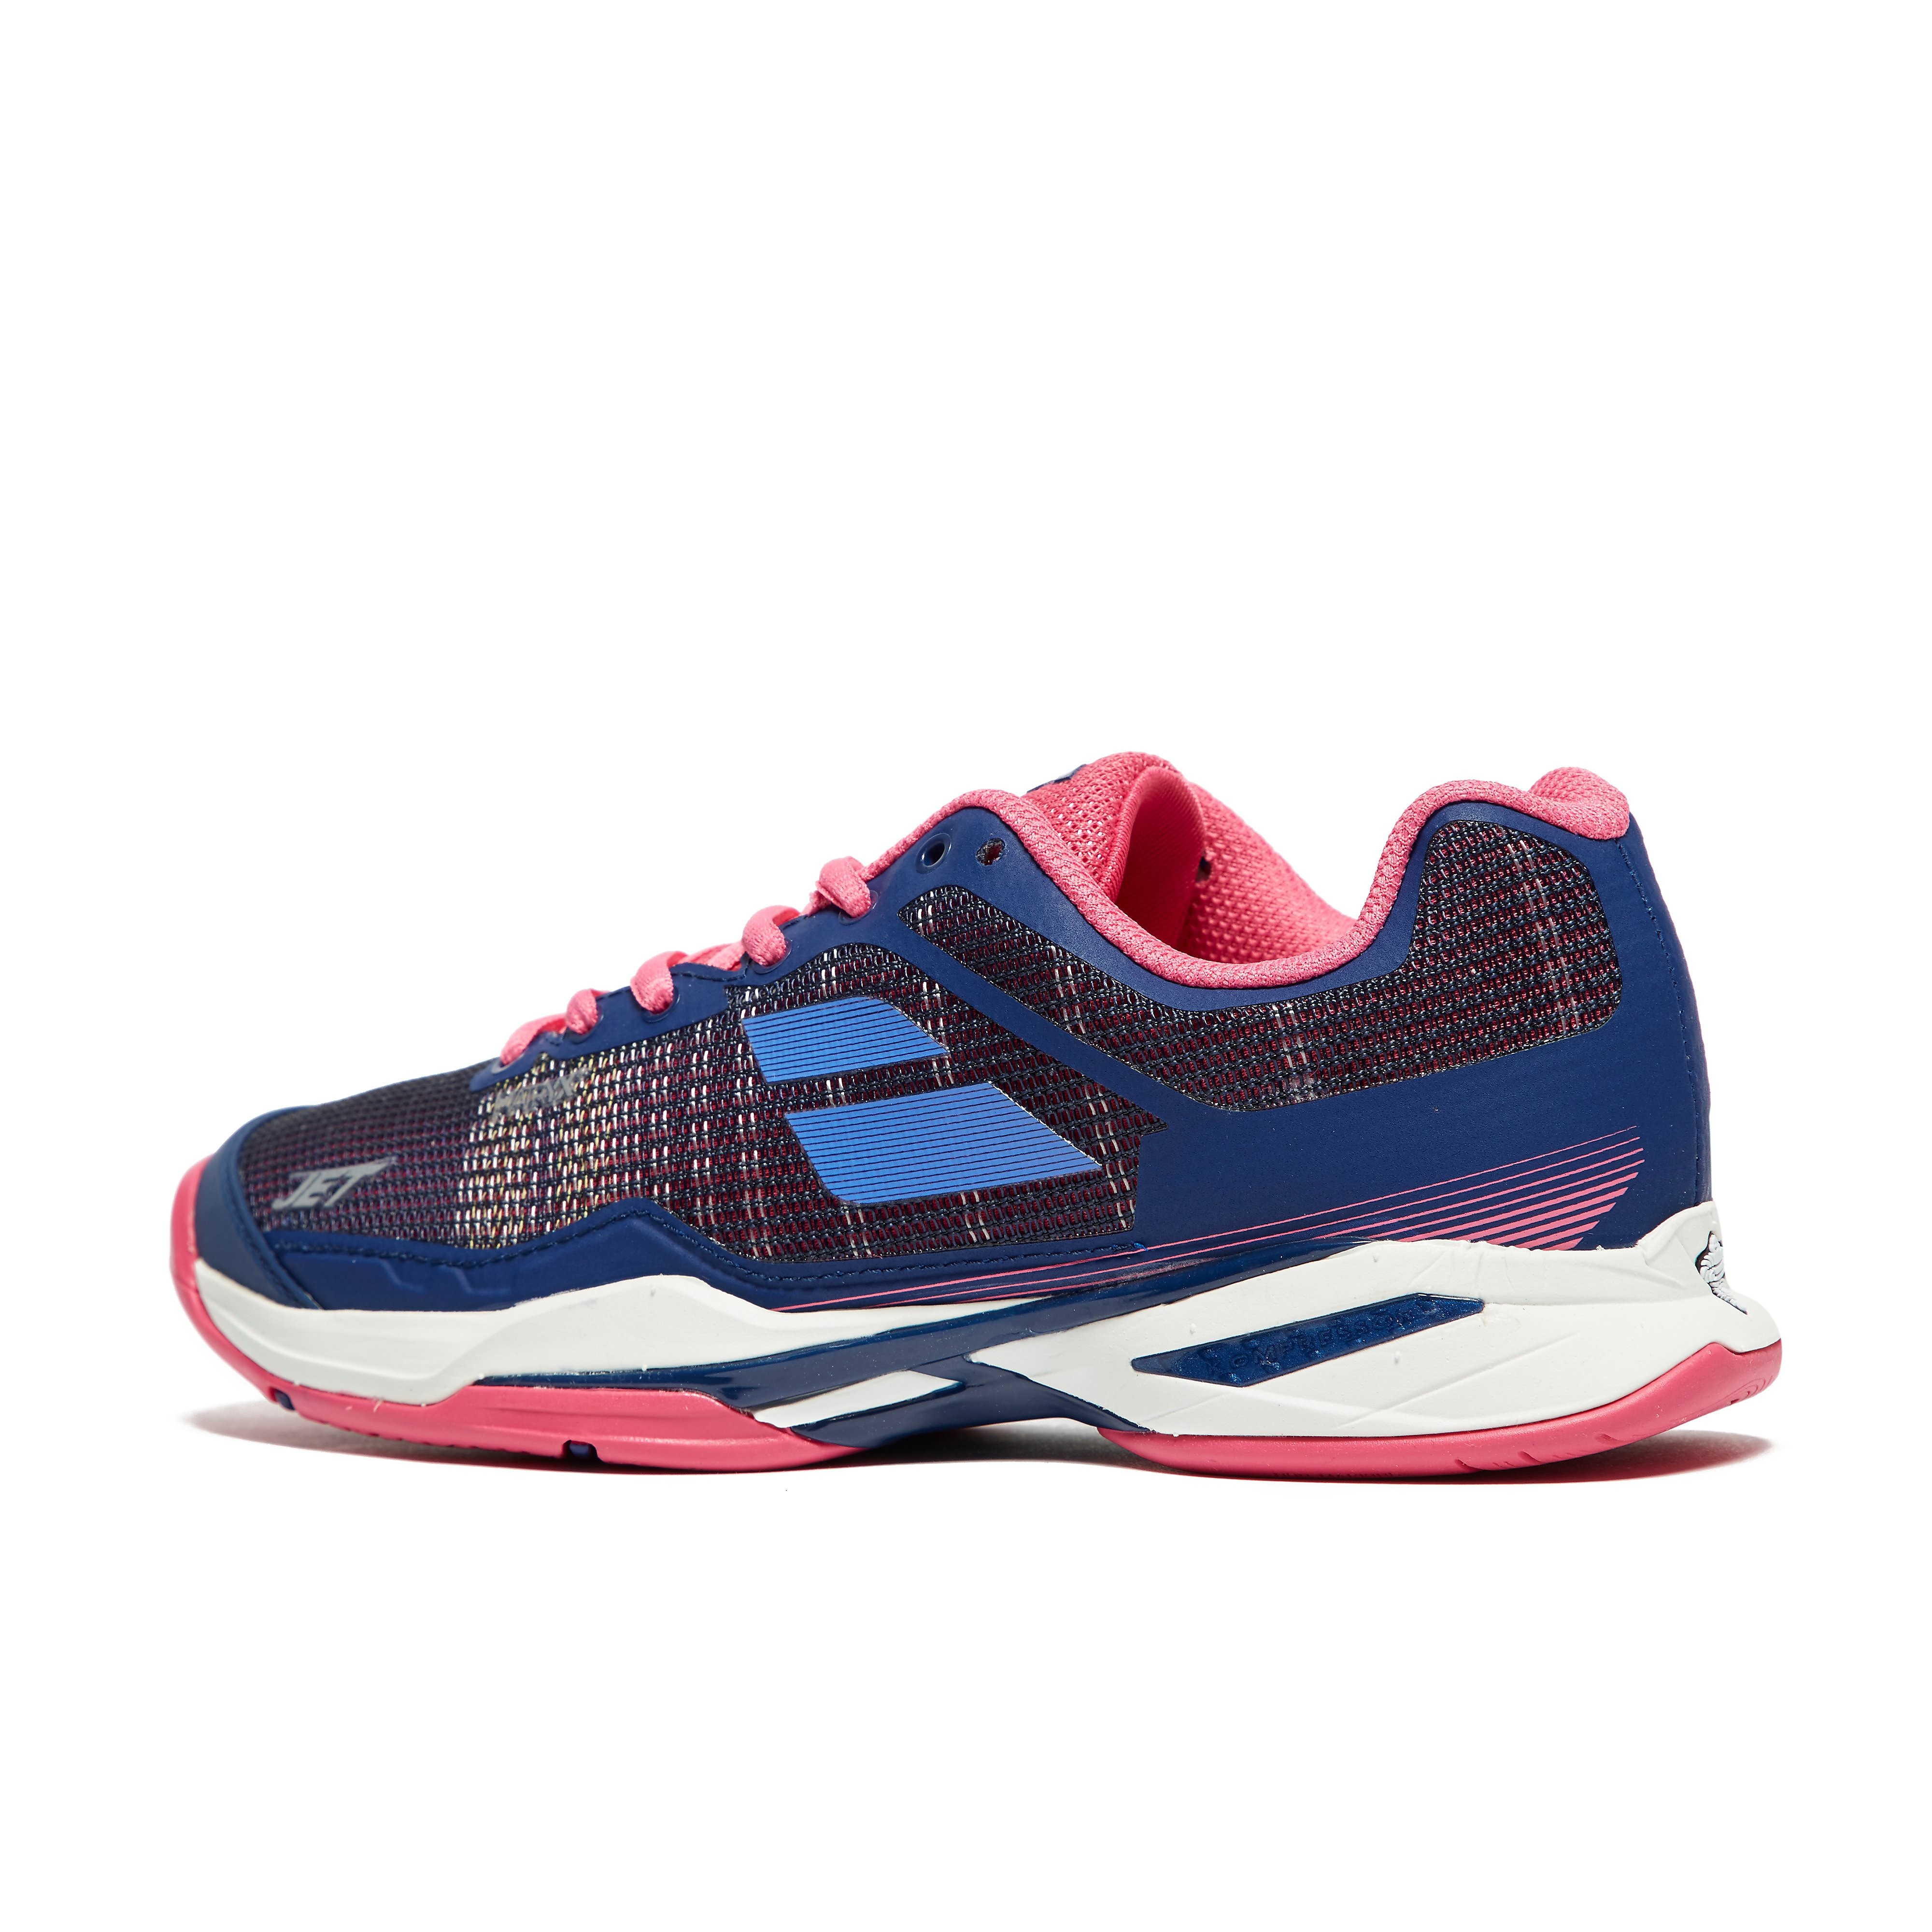 Babolat Jet Mach I All Court Women's Tennis Shoes